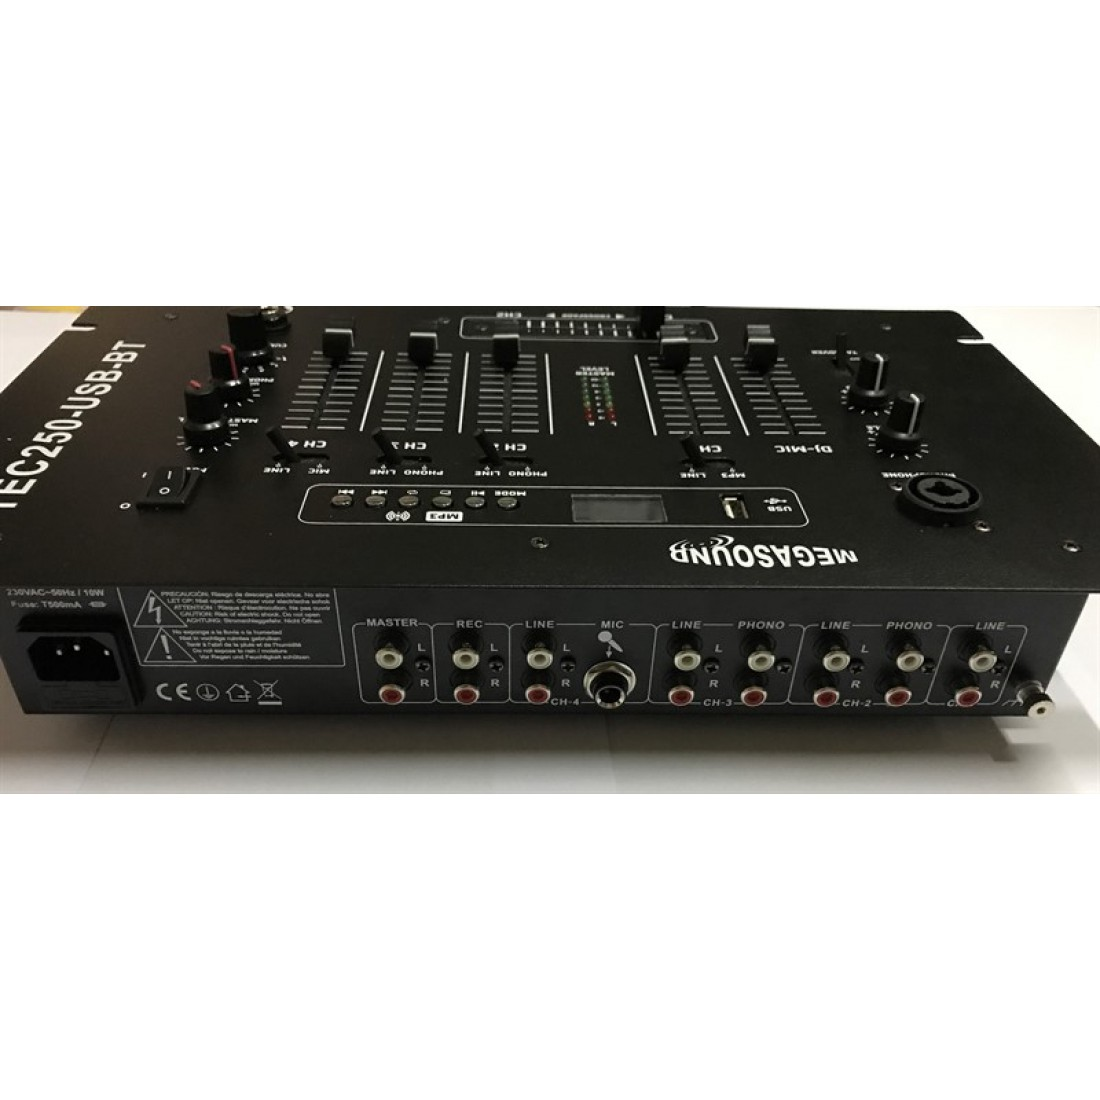 Tec250usb Tec250 4 Stereo Channels Usb Stick Sd Card 2 Mic Mixer For Microphone With Inputs Talkover Mixing Console